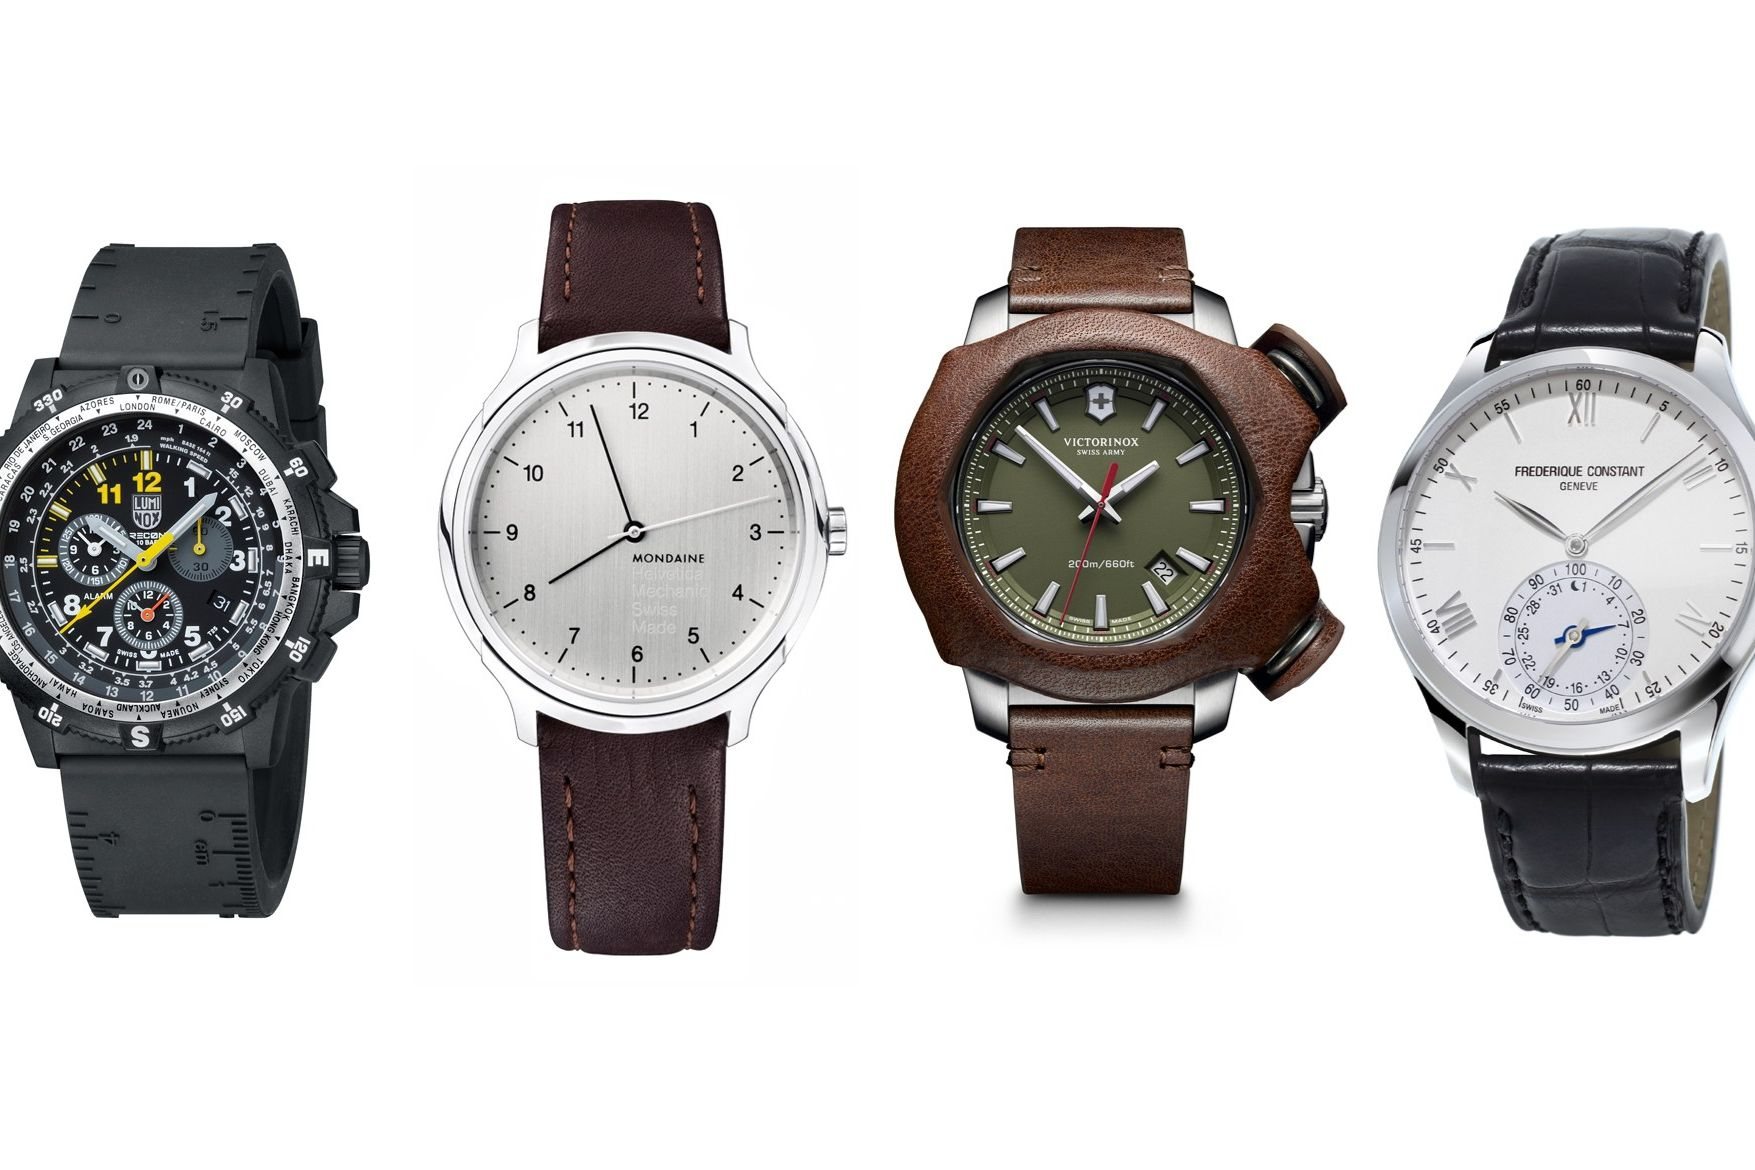 the best s watches 163 1 000 for 2015 gq